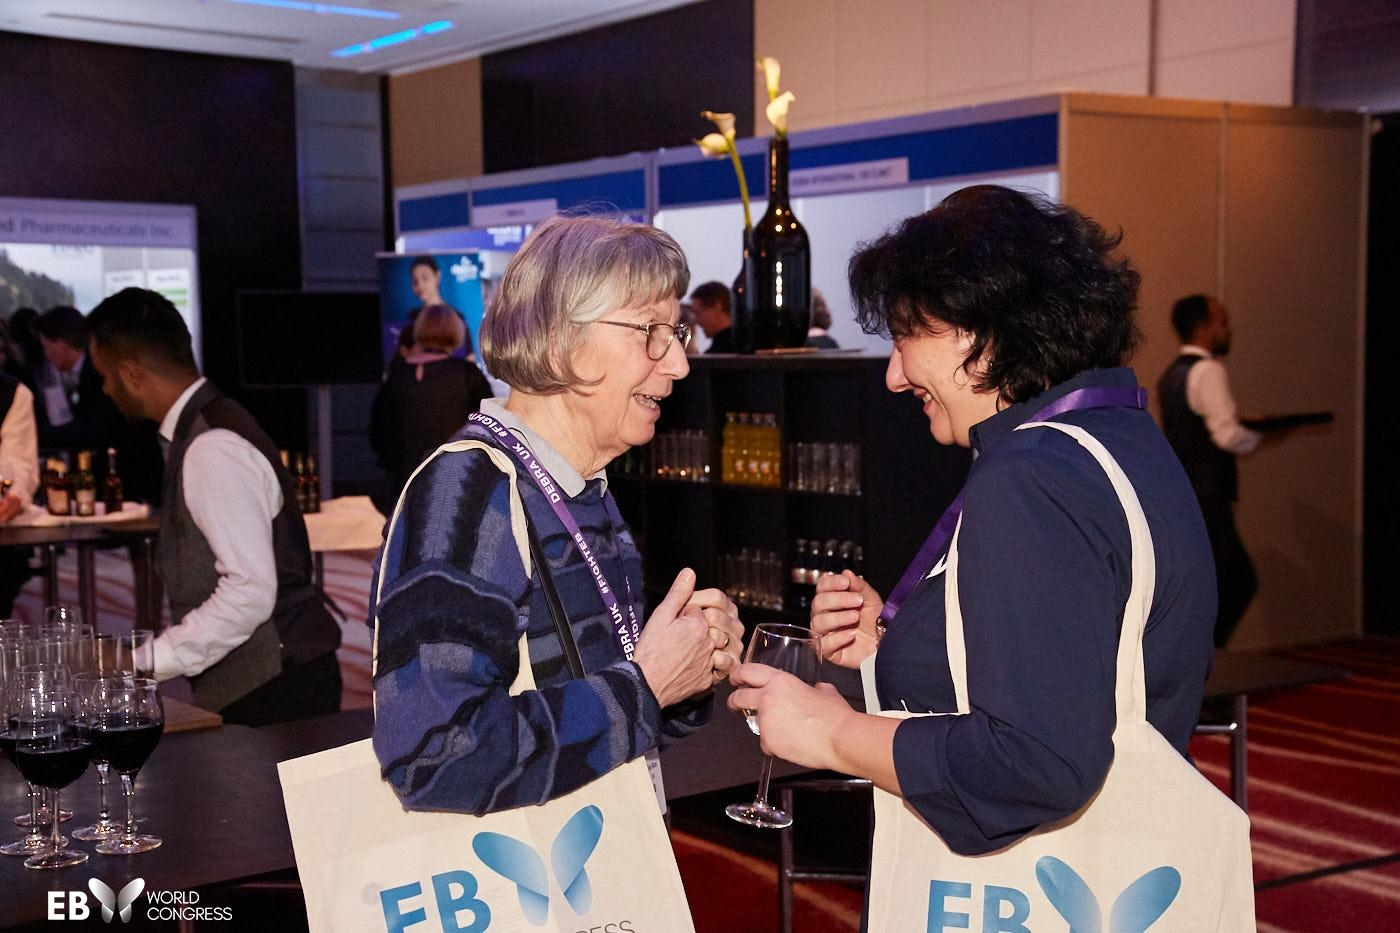 welcome reception, meetings, side fora, events, EB2020, EB Congress, EB World Congress, Blisters, Genetic, Skin, Wounds